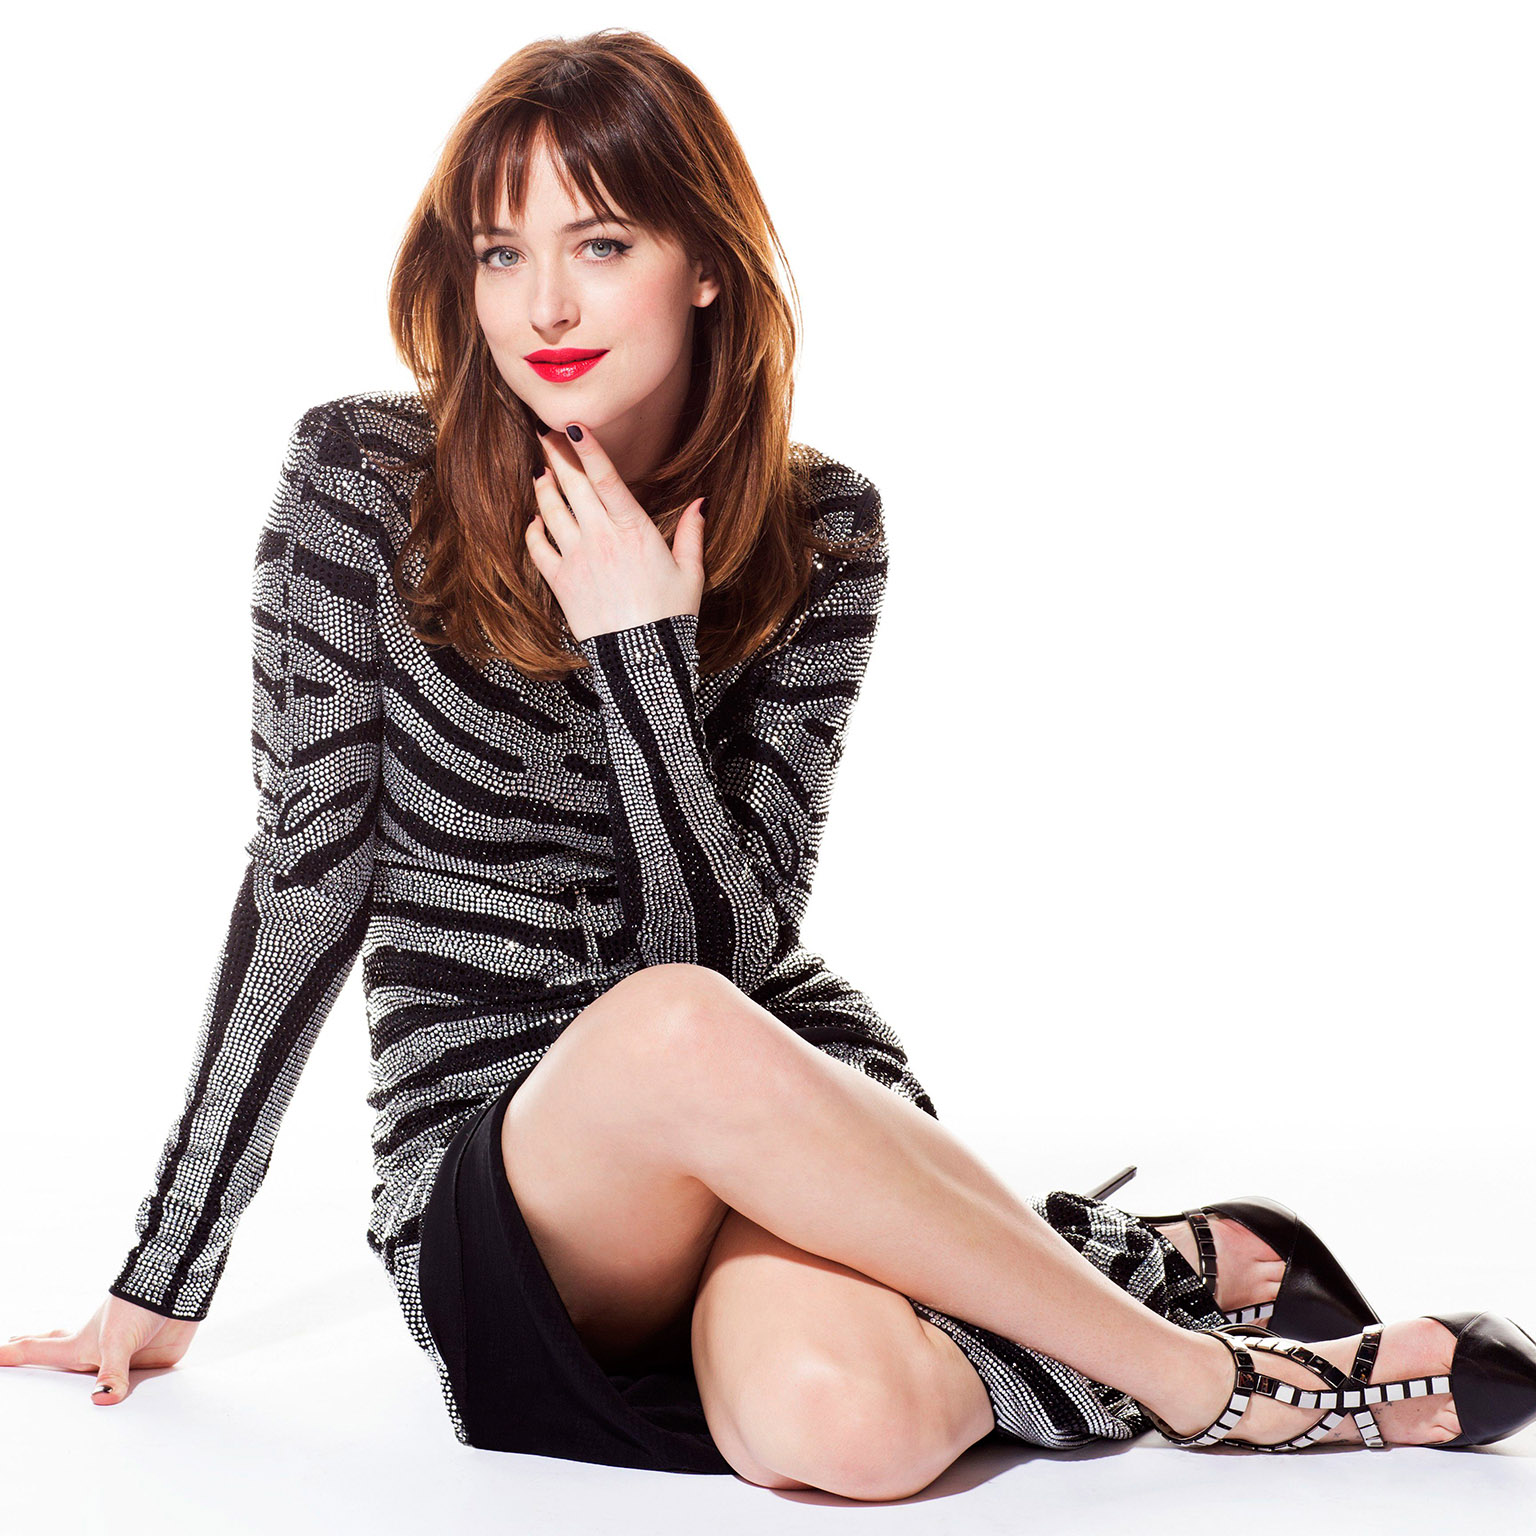 Dakota Johnson Hot Pics, Sexiest Bikini Photos Gallery